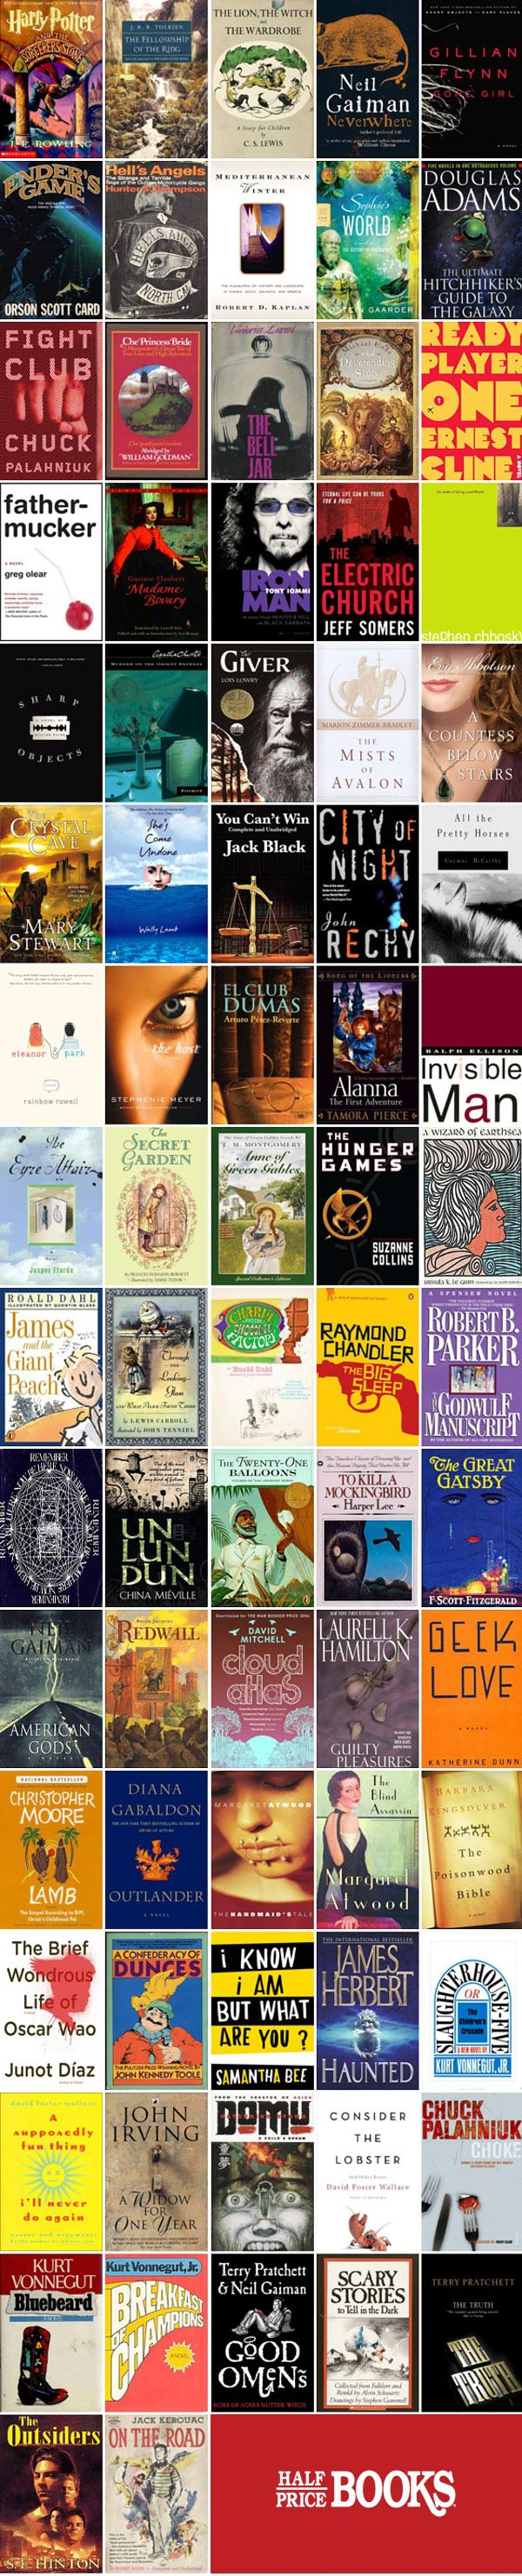 Books You Can't Put Down | The Half Price Blog